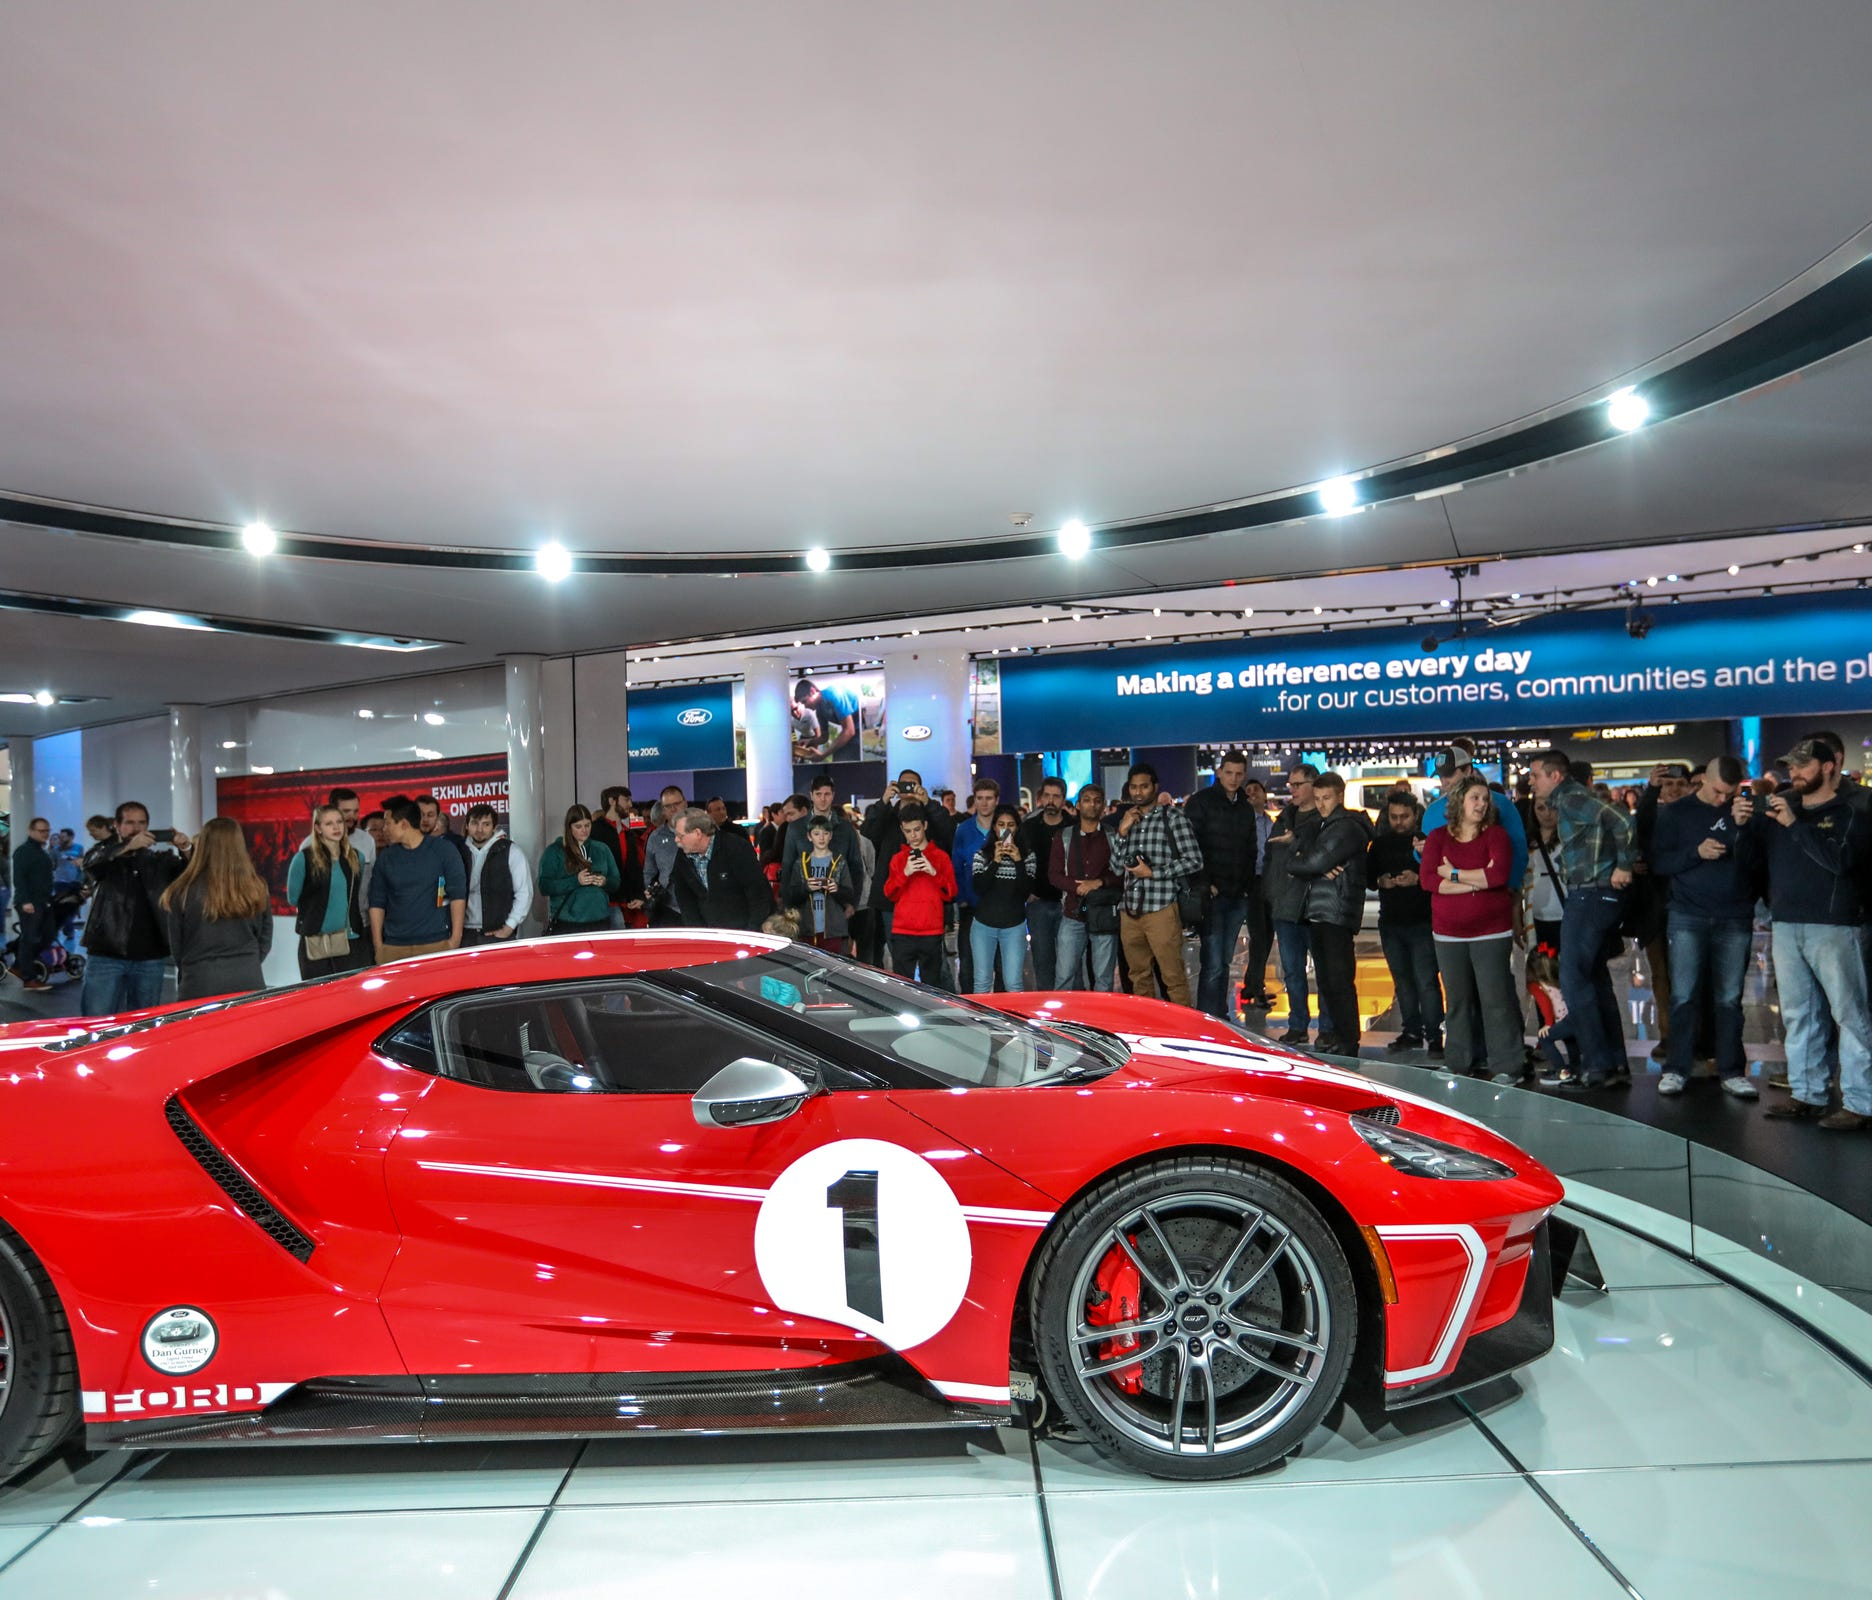 Ford GT is a big attration during the first public day of the North American International Auto Show in downtown Detroit on Saturday, Jan. 20, 2018.